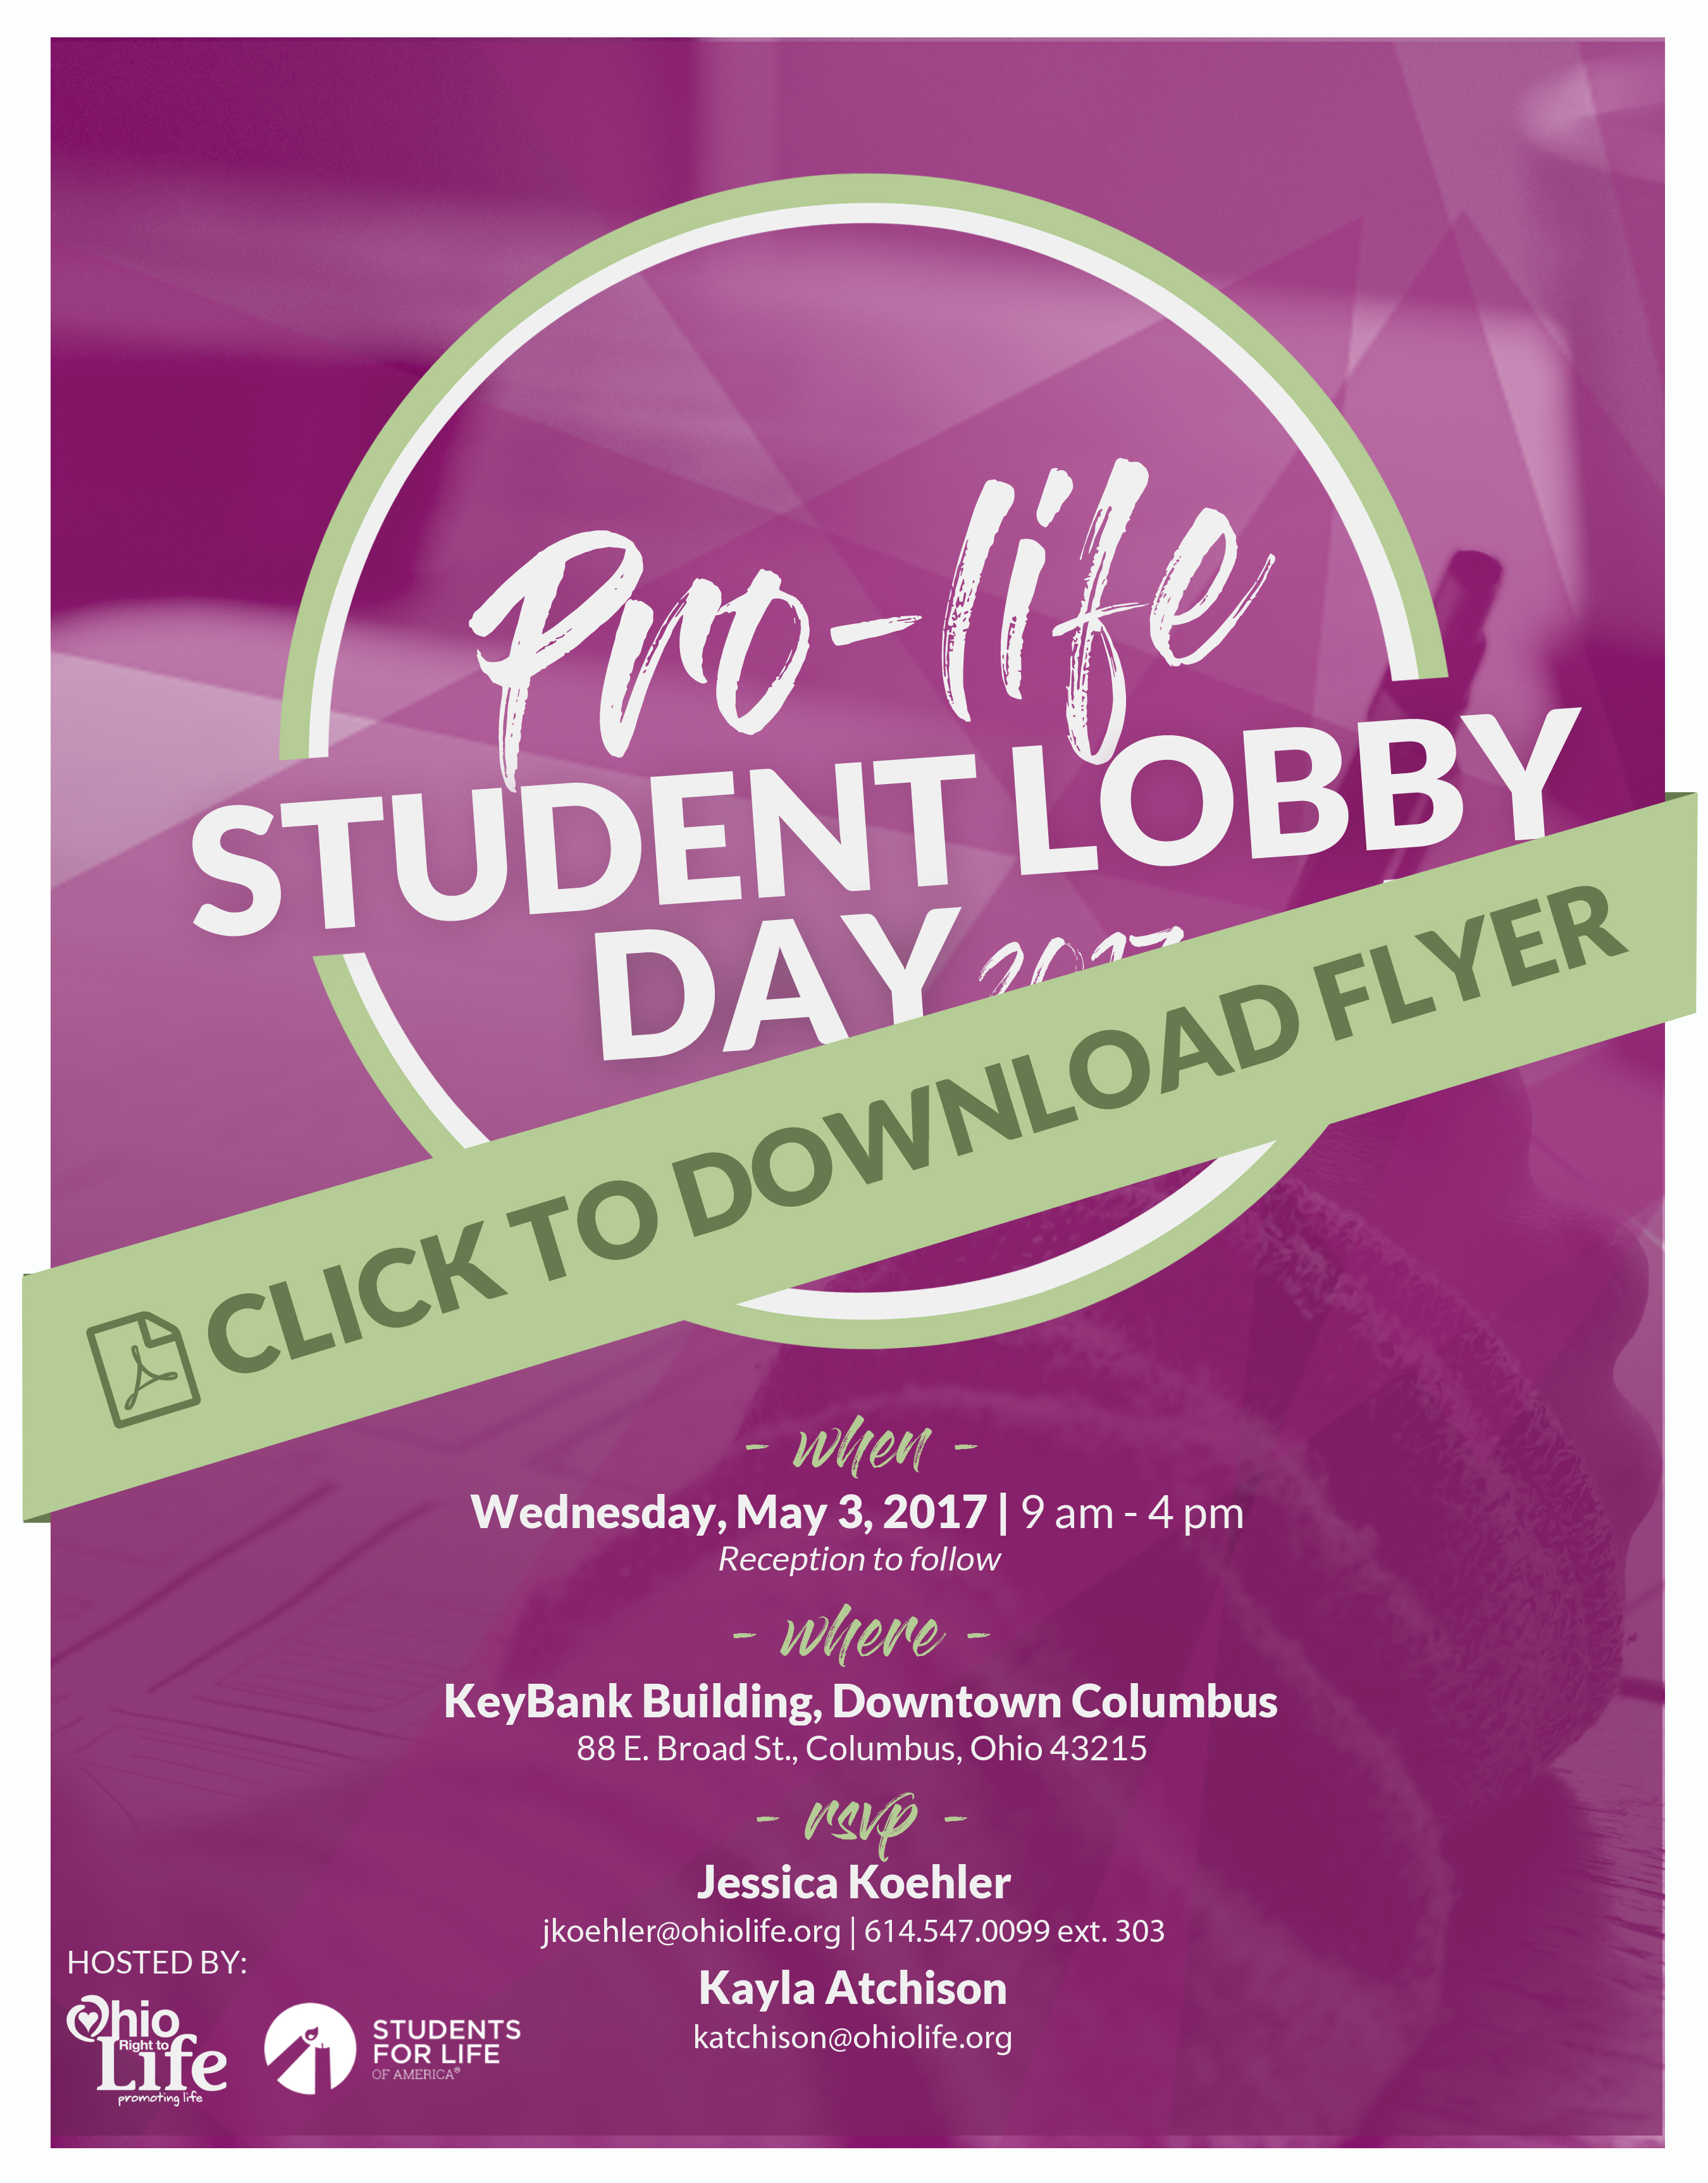 2017_Student_Lobby_Day_-_click_to_download.jpg